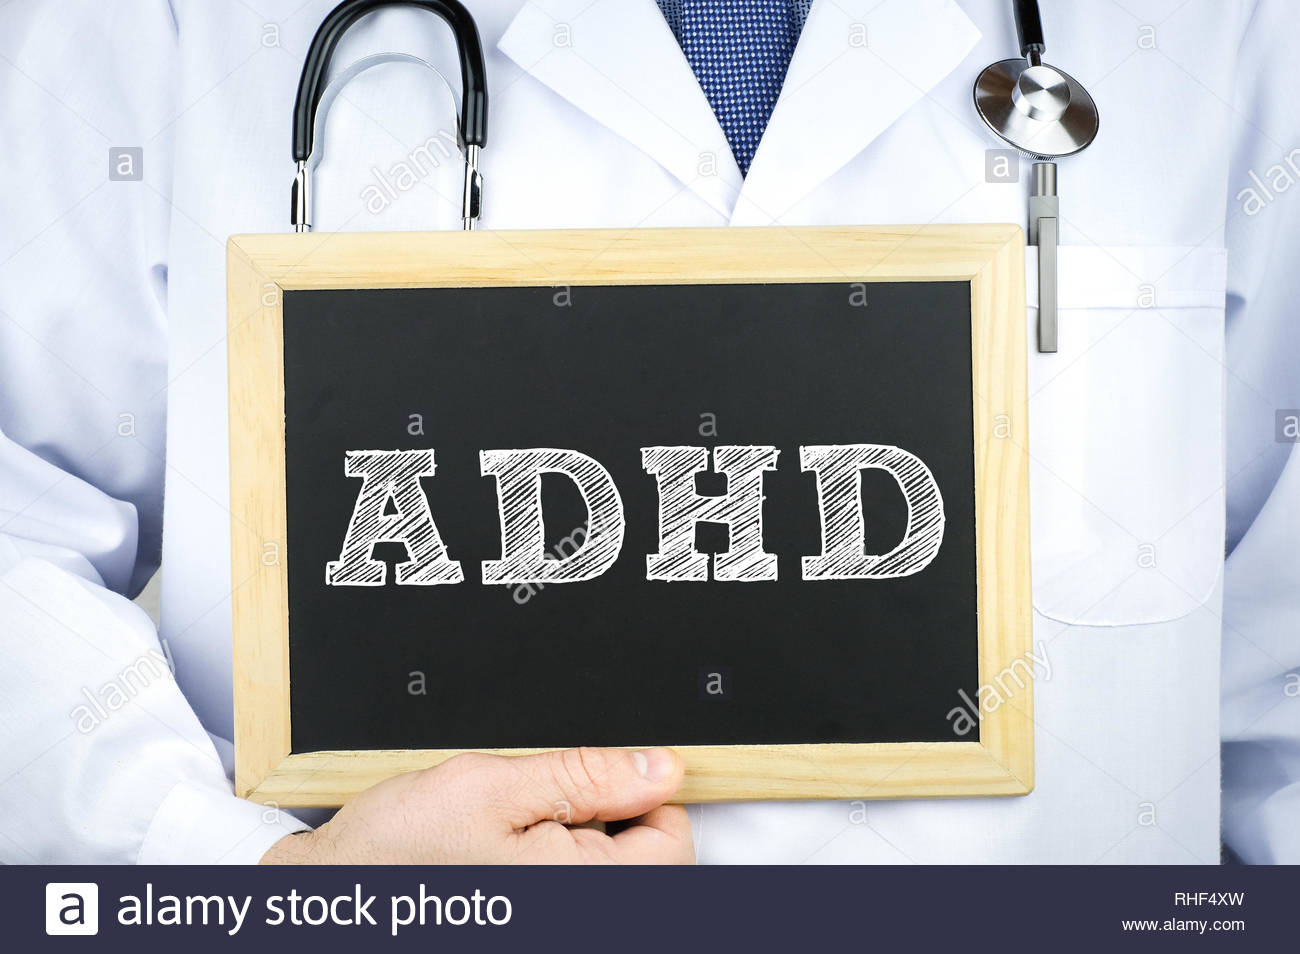 ADHD - Attention deficit hyperactivity disorder - Stock Image